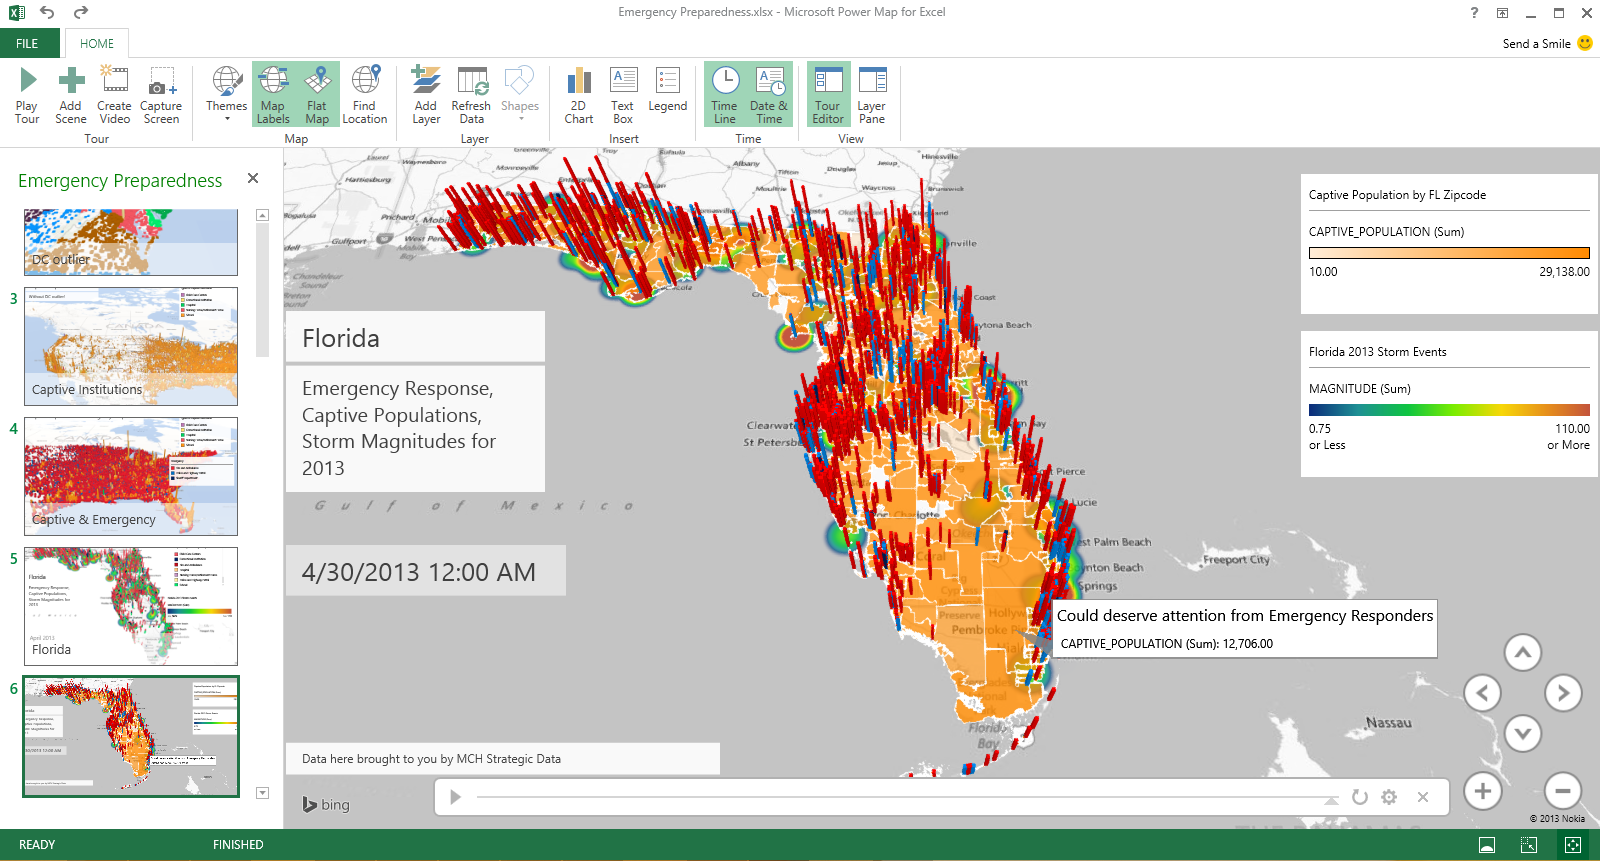 Ediblewildsus  Outstanding Power Map For Excel Now Generally Available Automatically Updated  With Fetching Power Map For Excel Now Generally Available Automatically Updated For Office  With Adorable Macros En Excel Also Excel Driving In Addition Headers In Excel And How To Flip Data In Excel As Well As How To Change The Date Format In Excel Additionally How To Get Average In Excel From Powerbimicrosoftcom With Ediblewildsus  Fetching Power Map For Excel Now Generally Available Automatically Updated  With Adorable Power Map For Excel Now Generally Available Automatically Updated For Office  And Outstanding Macros En Excel Also Excel Driving In Addition Headers In Excel From Powerbimicrosoftcom